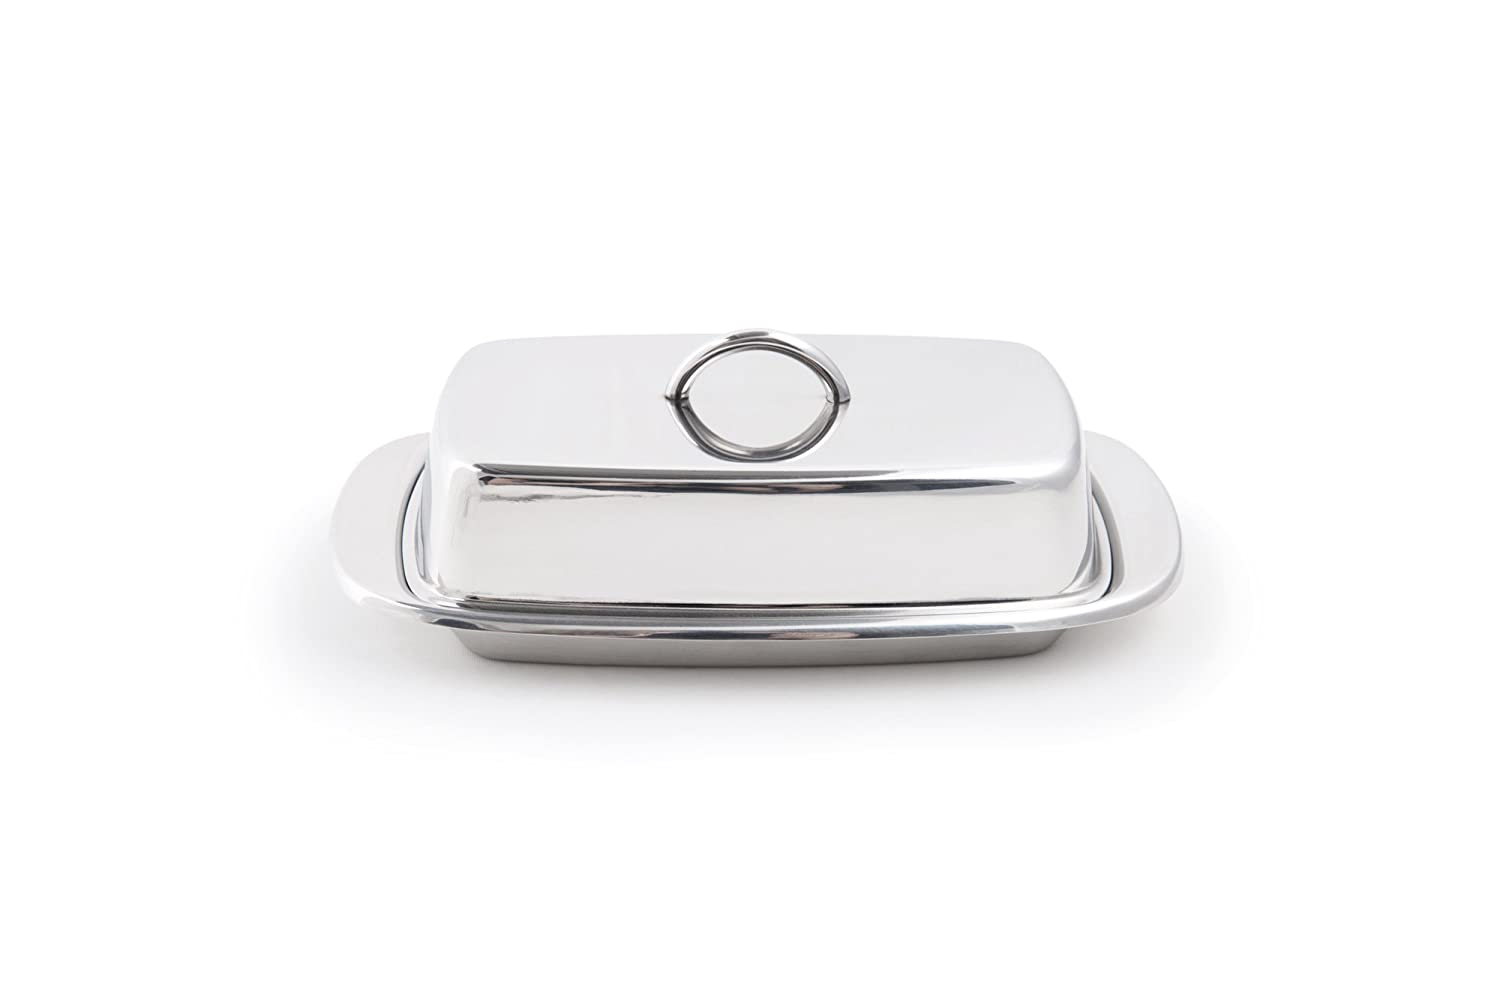 Fox Run 6510 Butter Dish with Lid, Stainless Steel Fox Run Craftsmen